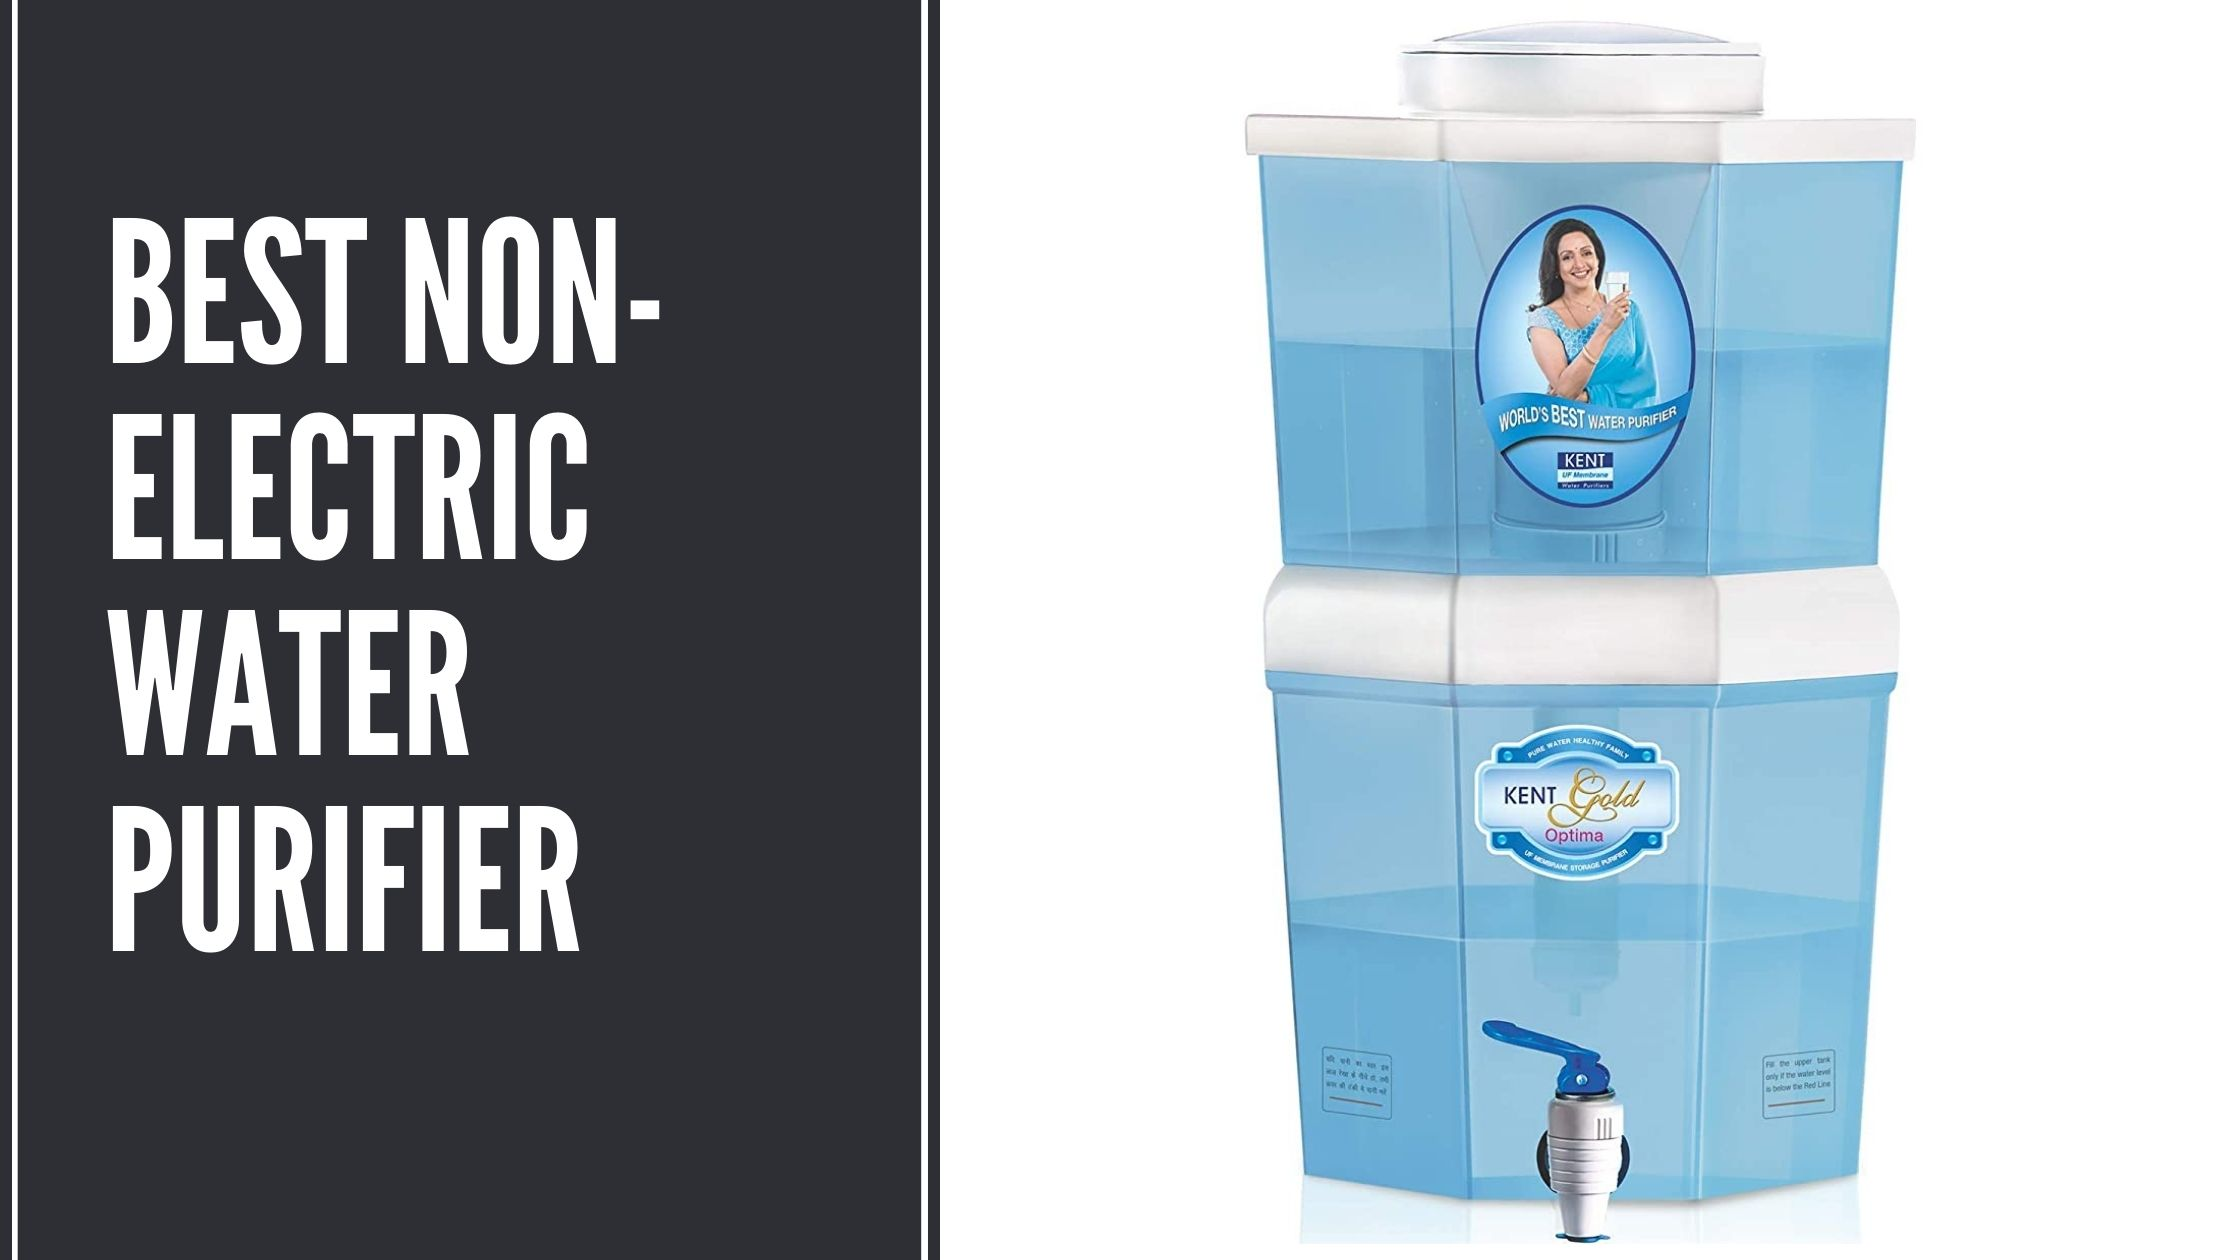 Best Non-Electric Water Purifier